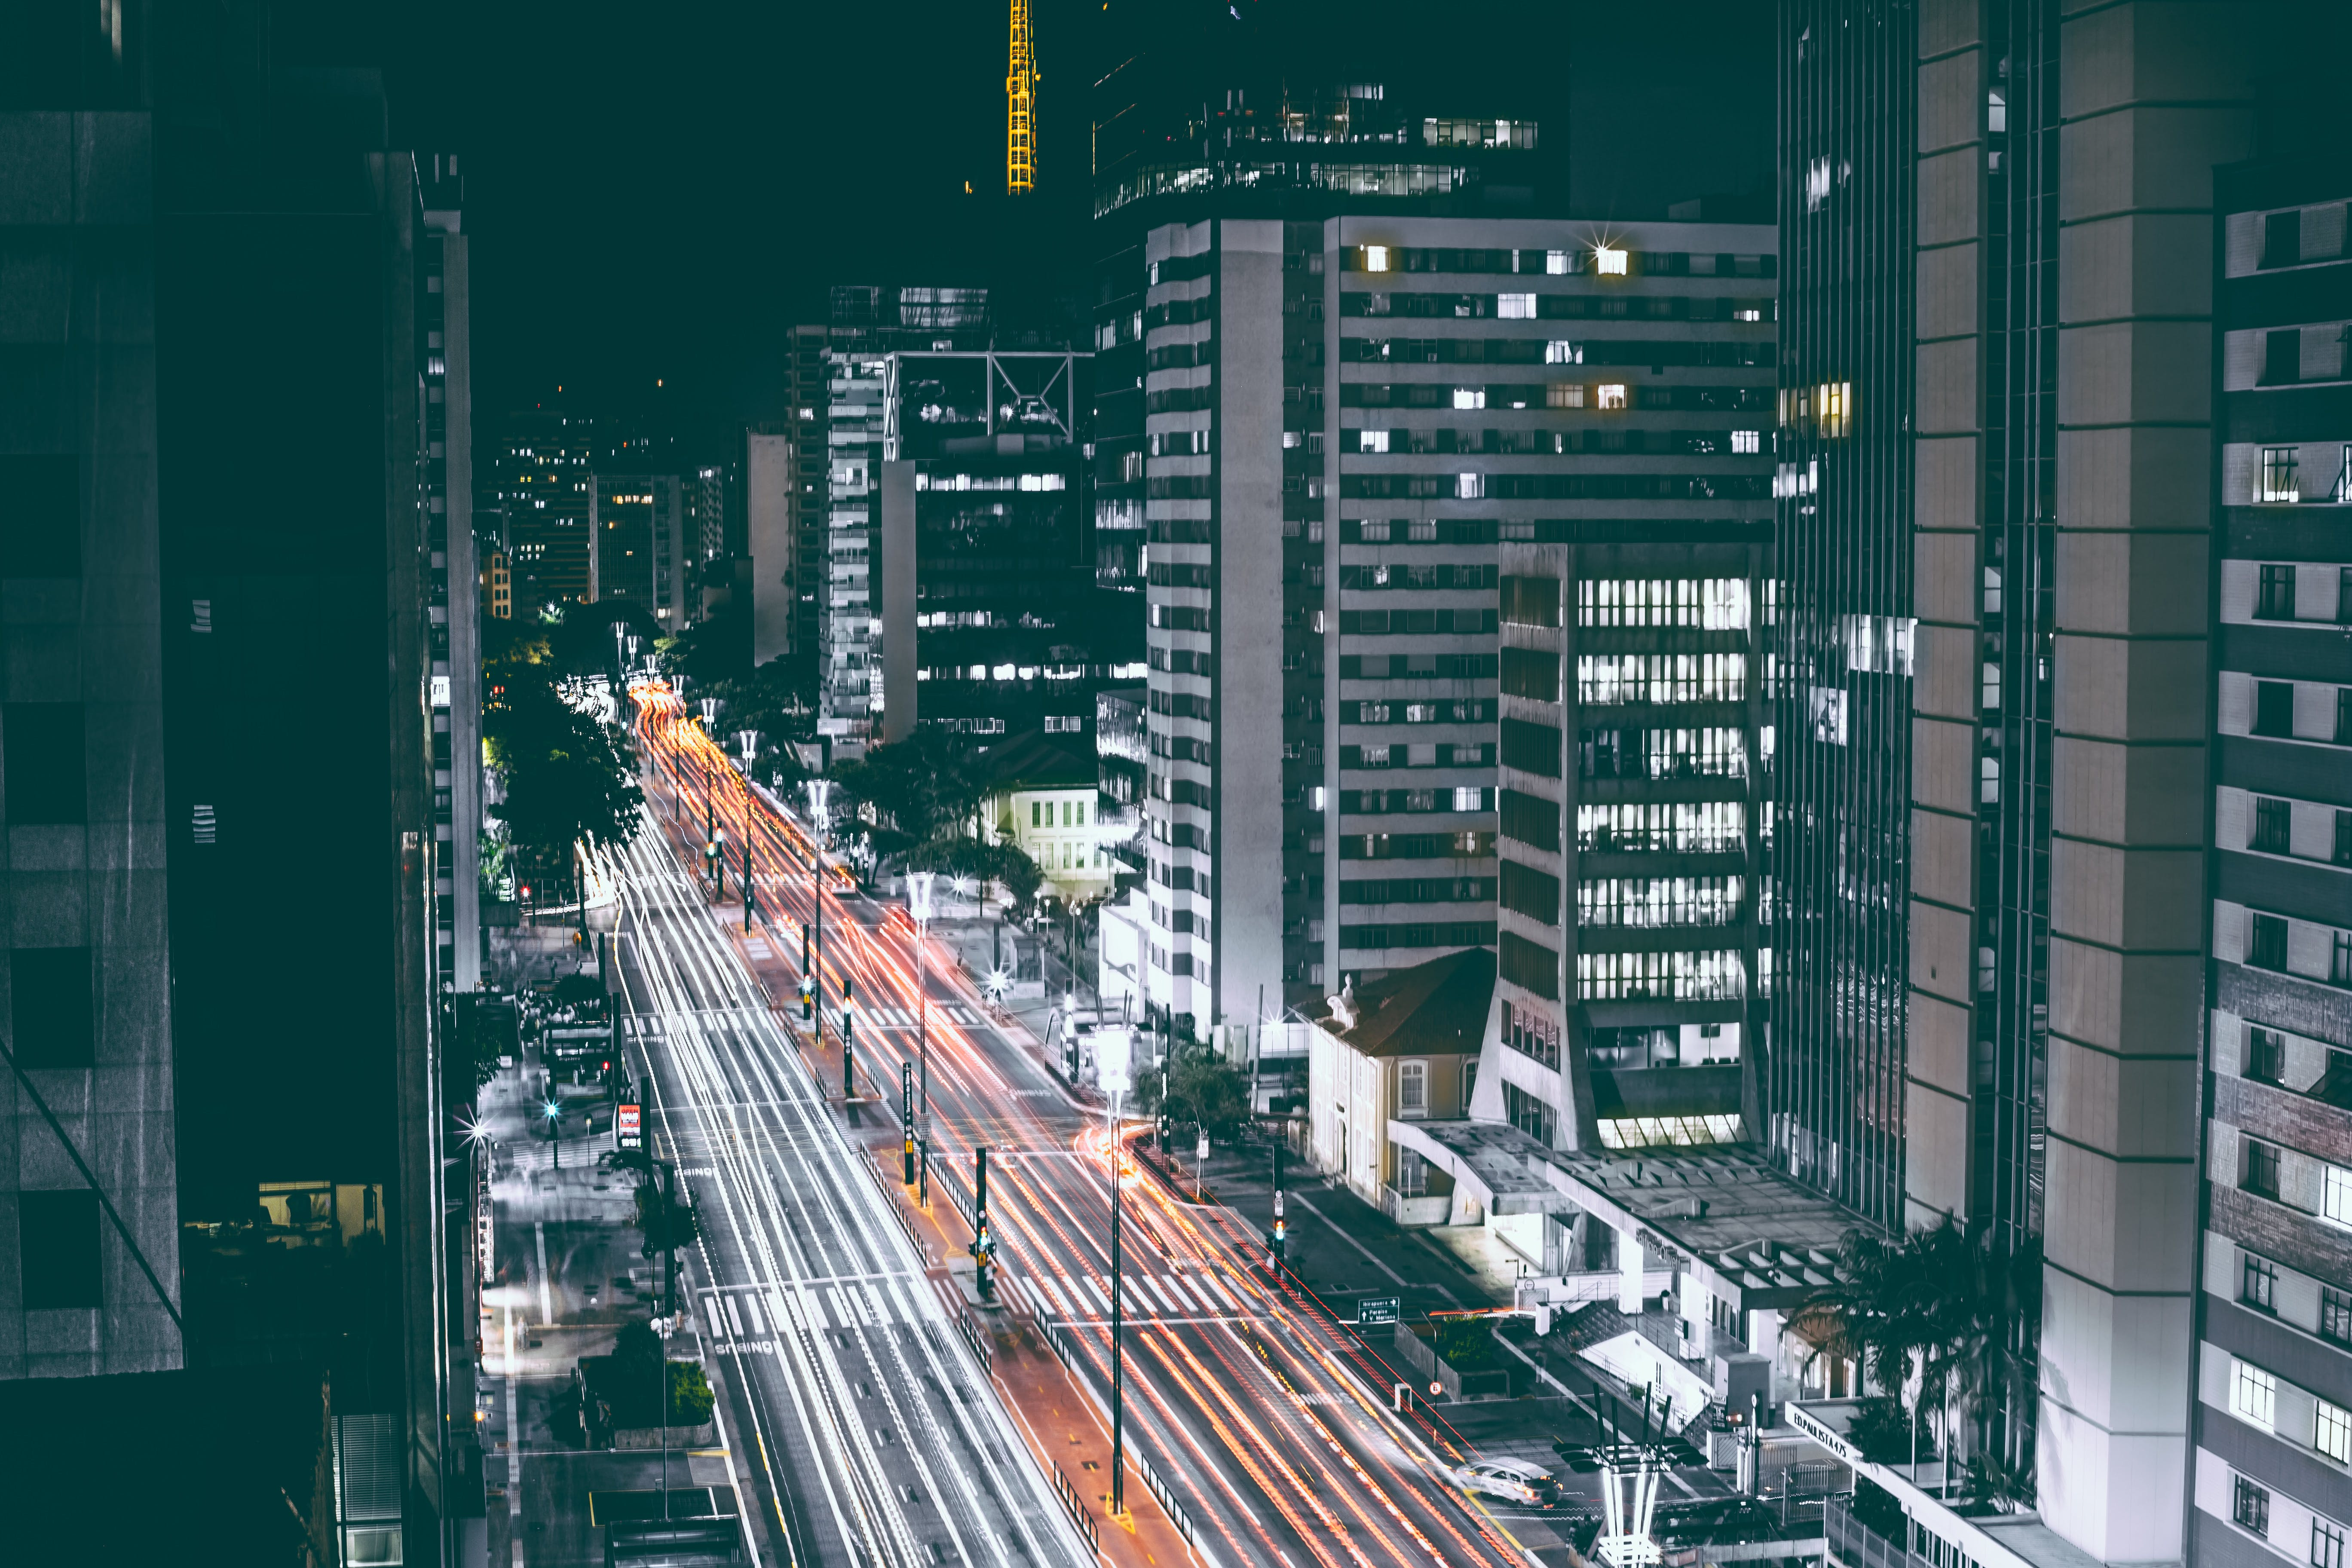 High Rise Buildings Beside Road during Nighttime